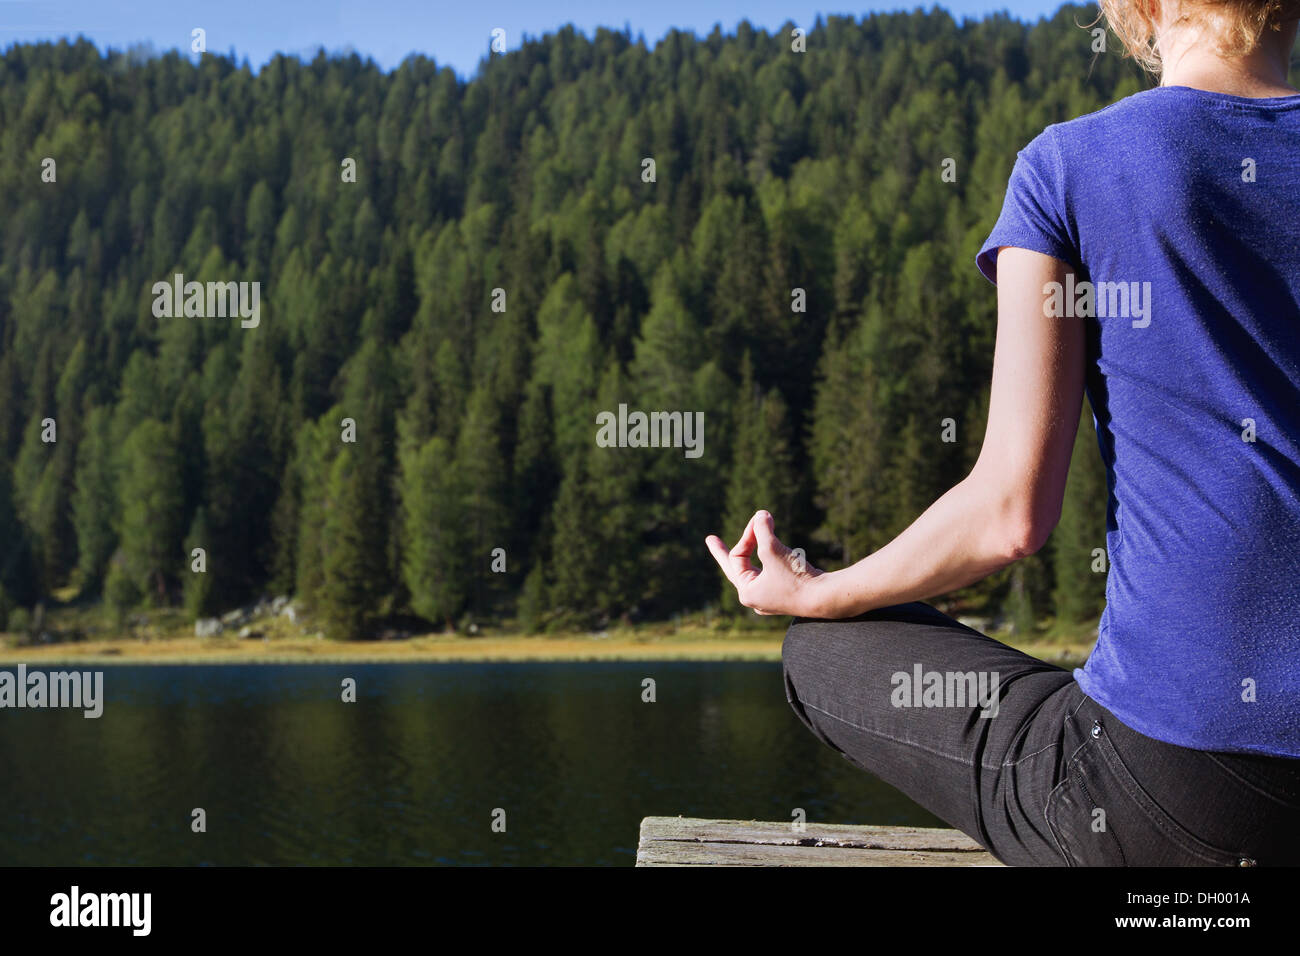 yoga and meditation near mountain lake - Stock Image